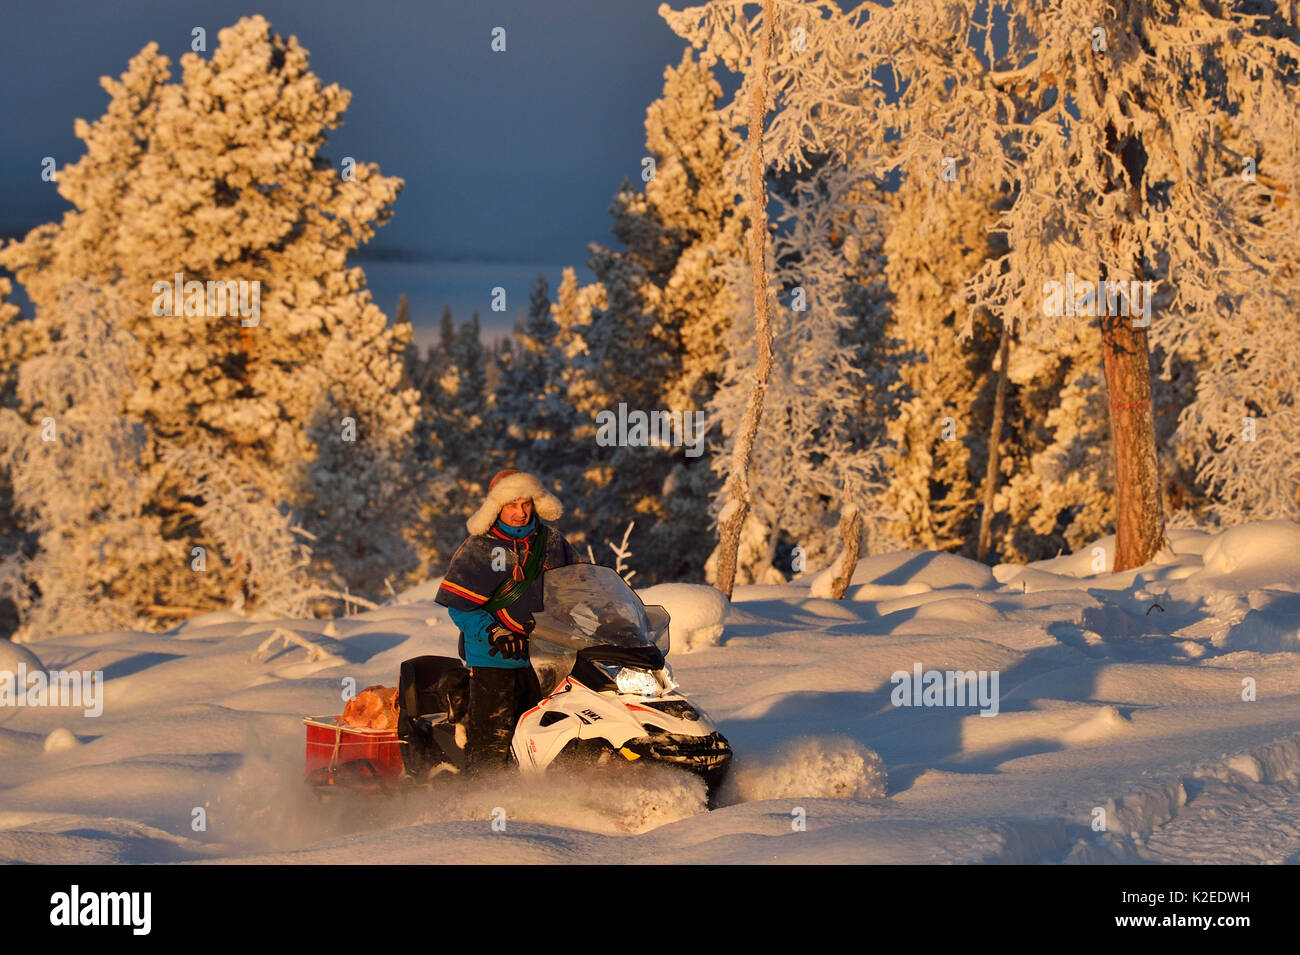 Nils-Torbjorn Nutti, owner and operator at Nutti Sami Siida, on snowmobile trip into the wilderness, Jukkasjarvi, Lapland, Laponia, Norrbotten county, Sweden Model released. - Stock Image